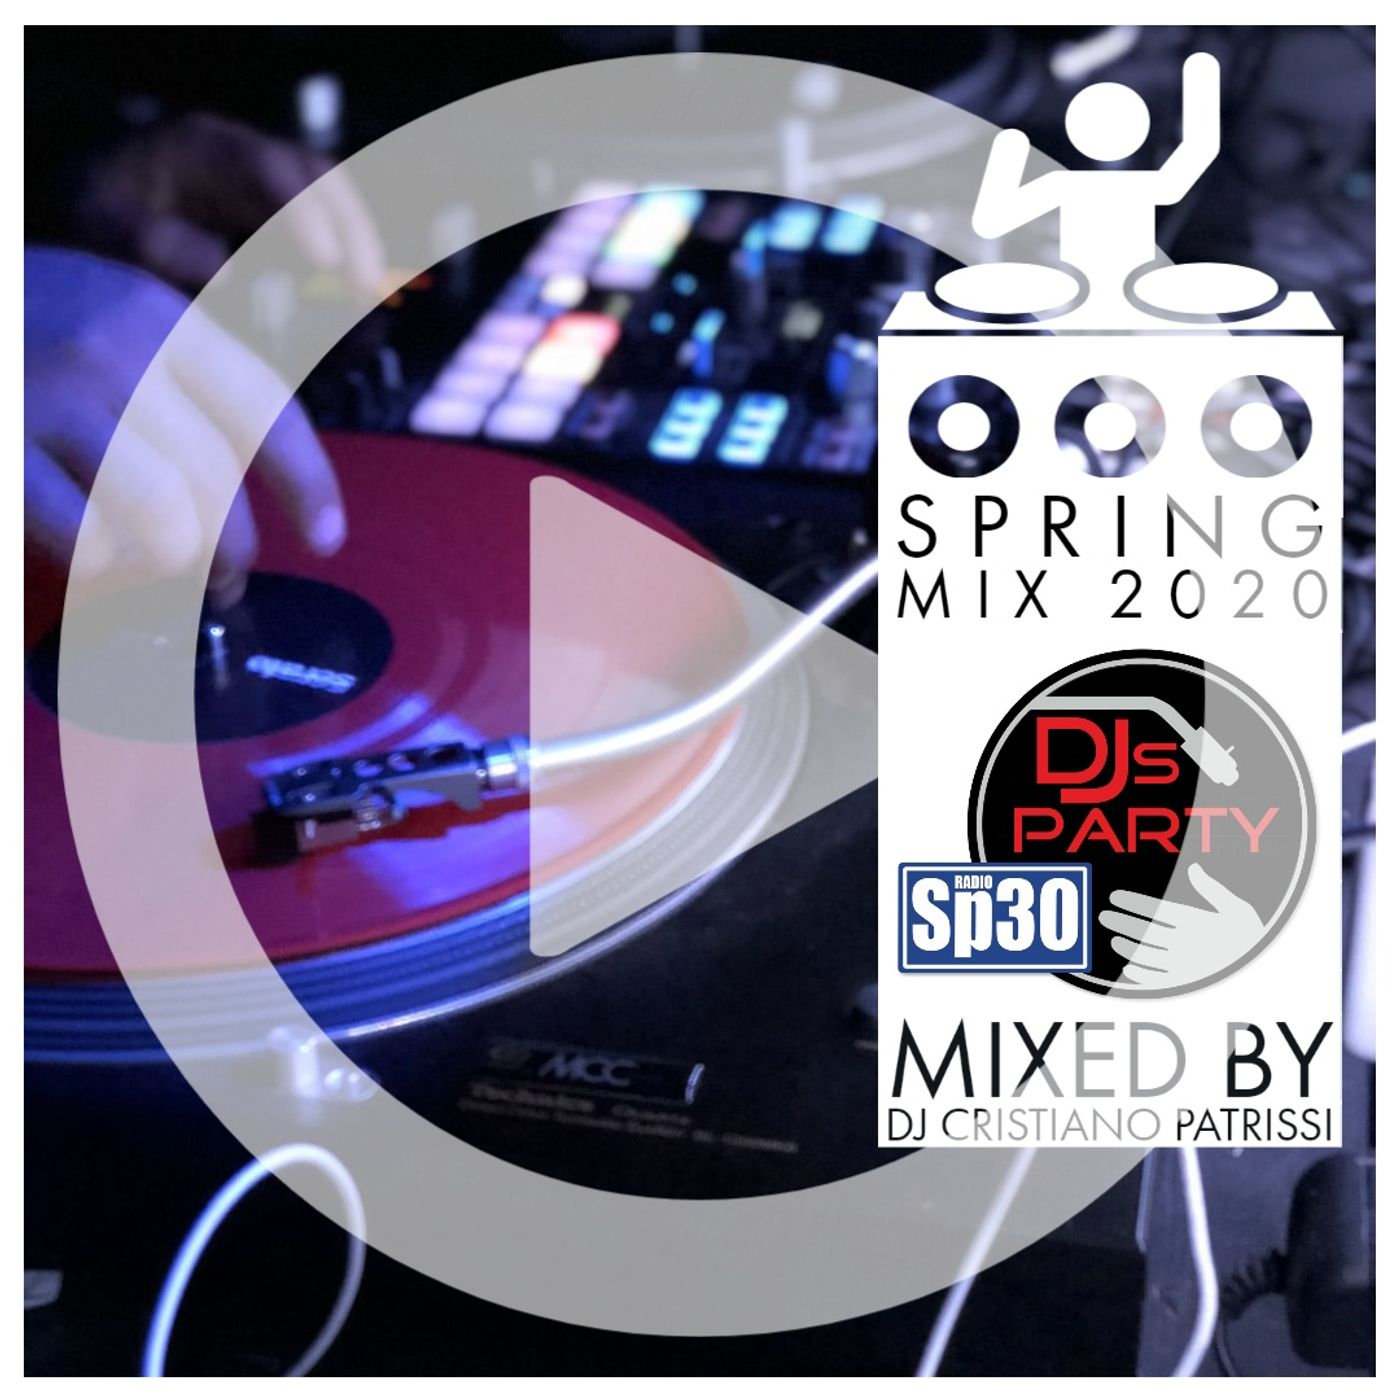 #djsparty - ST.2 EP.26 - Spring 2020